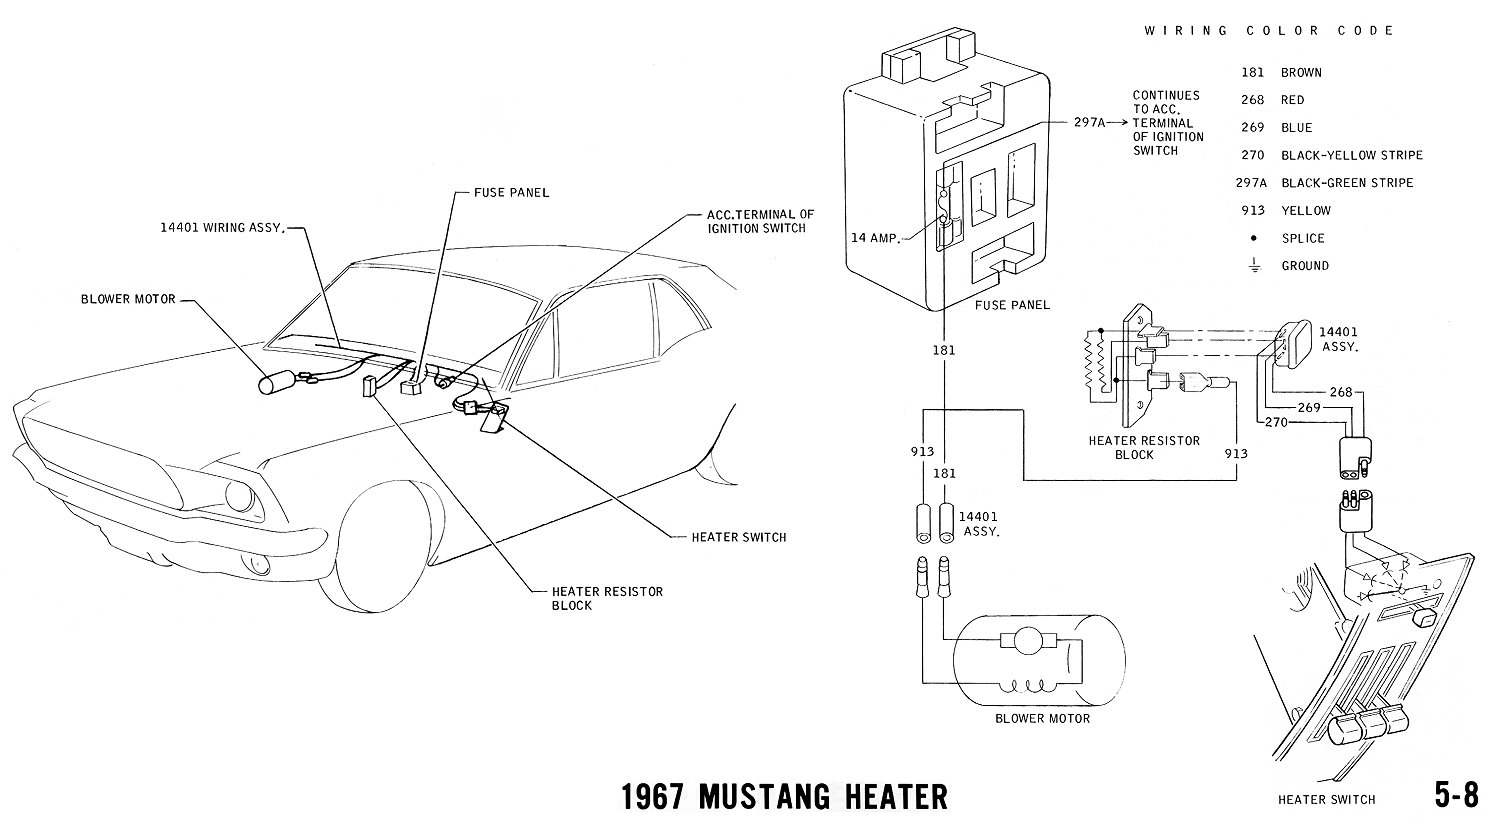 67heater 1967 mustang wiring and vacuum diagrams average joe restoration wiring diagram for 1966 ford fairlane at gsmx.co